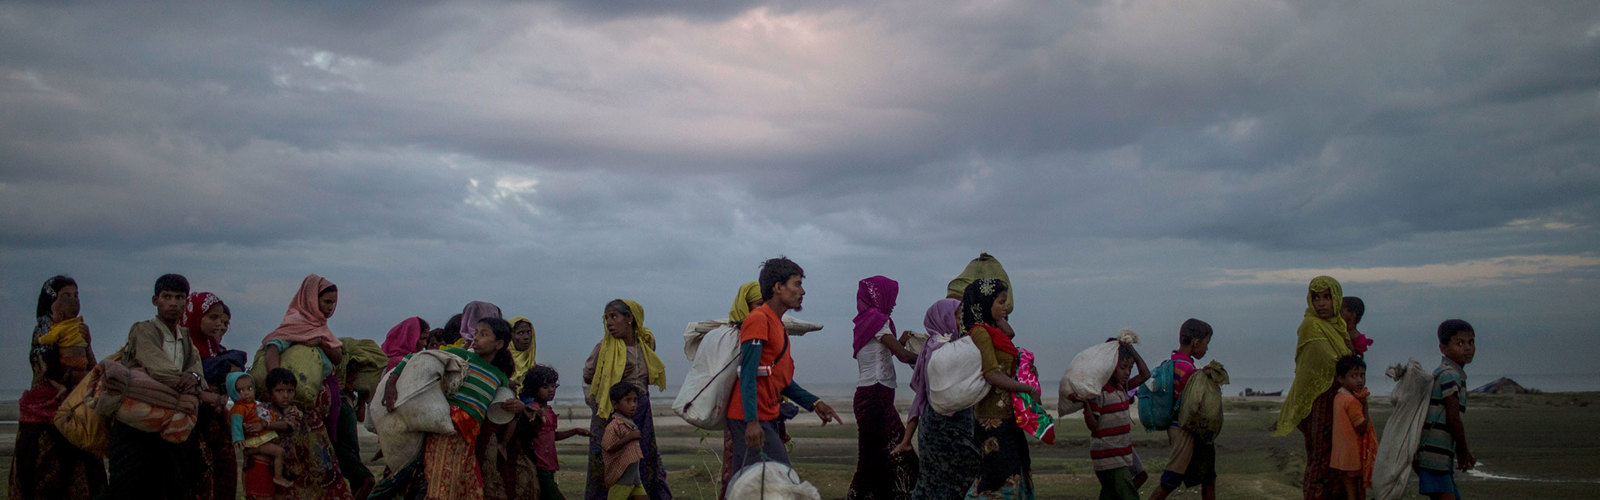 Human migration sparked by wars, disasters, and now climate